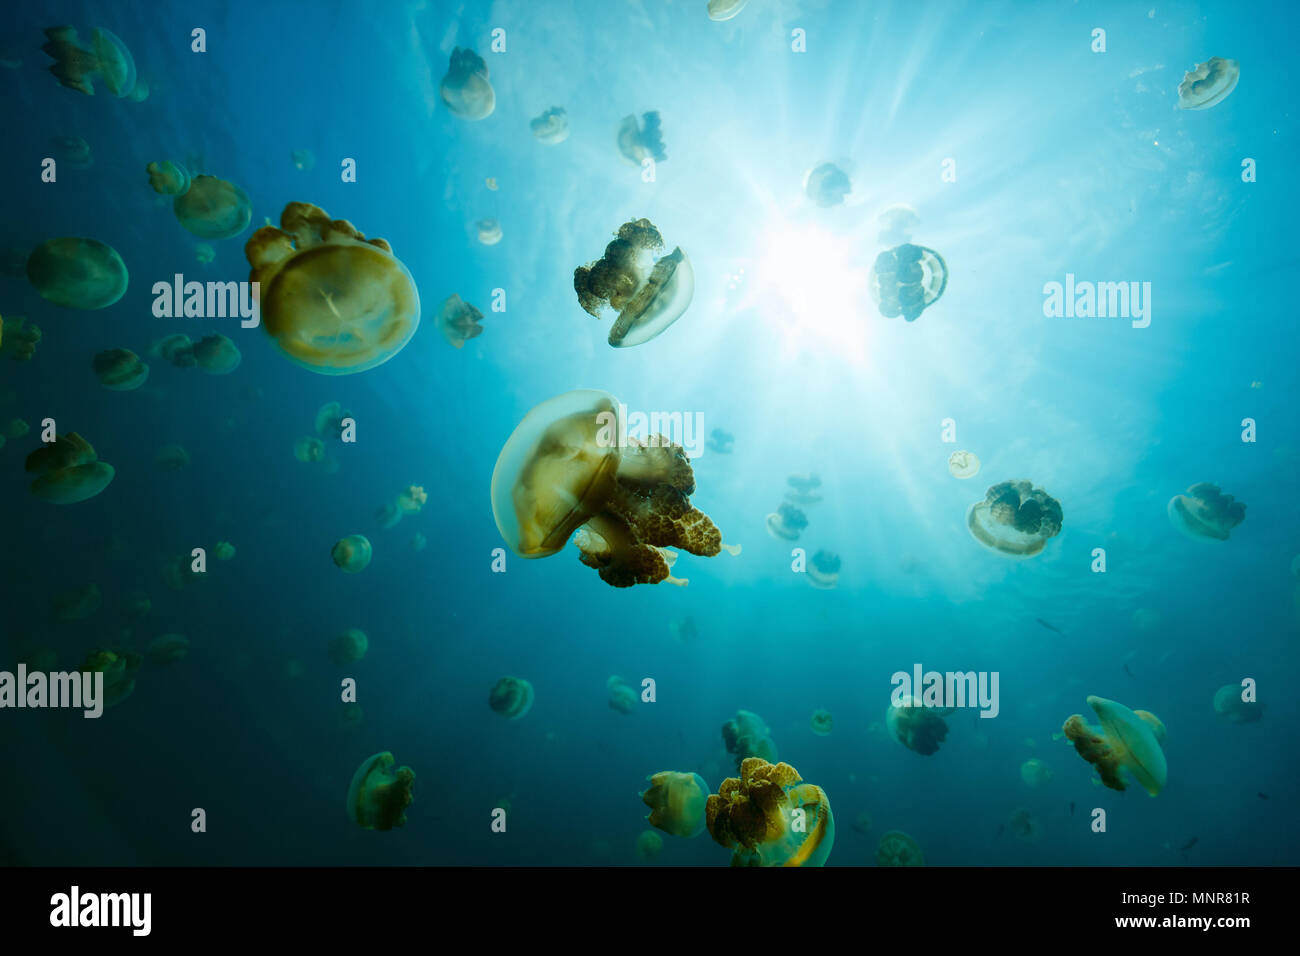 Underwater photo of endemic golden jellyfish in lake at Palau. Snorkeling in Jellyfish Lake is a popular activity for tourists to Palau. Stock Photo